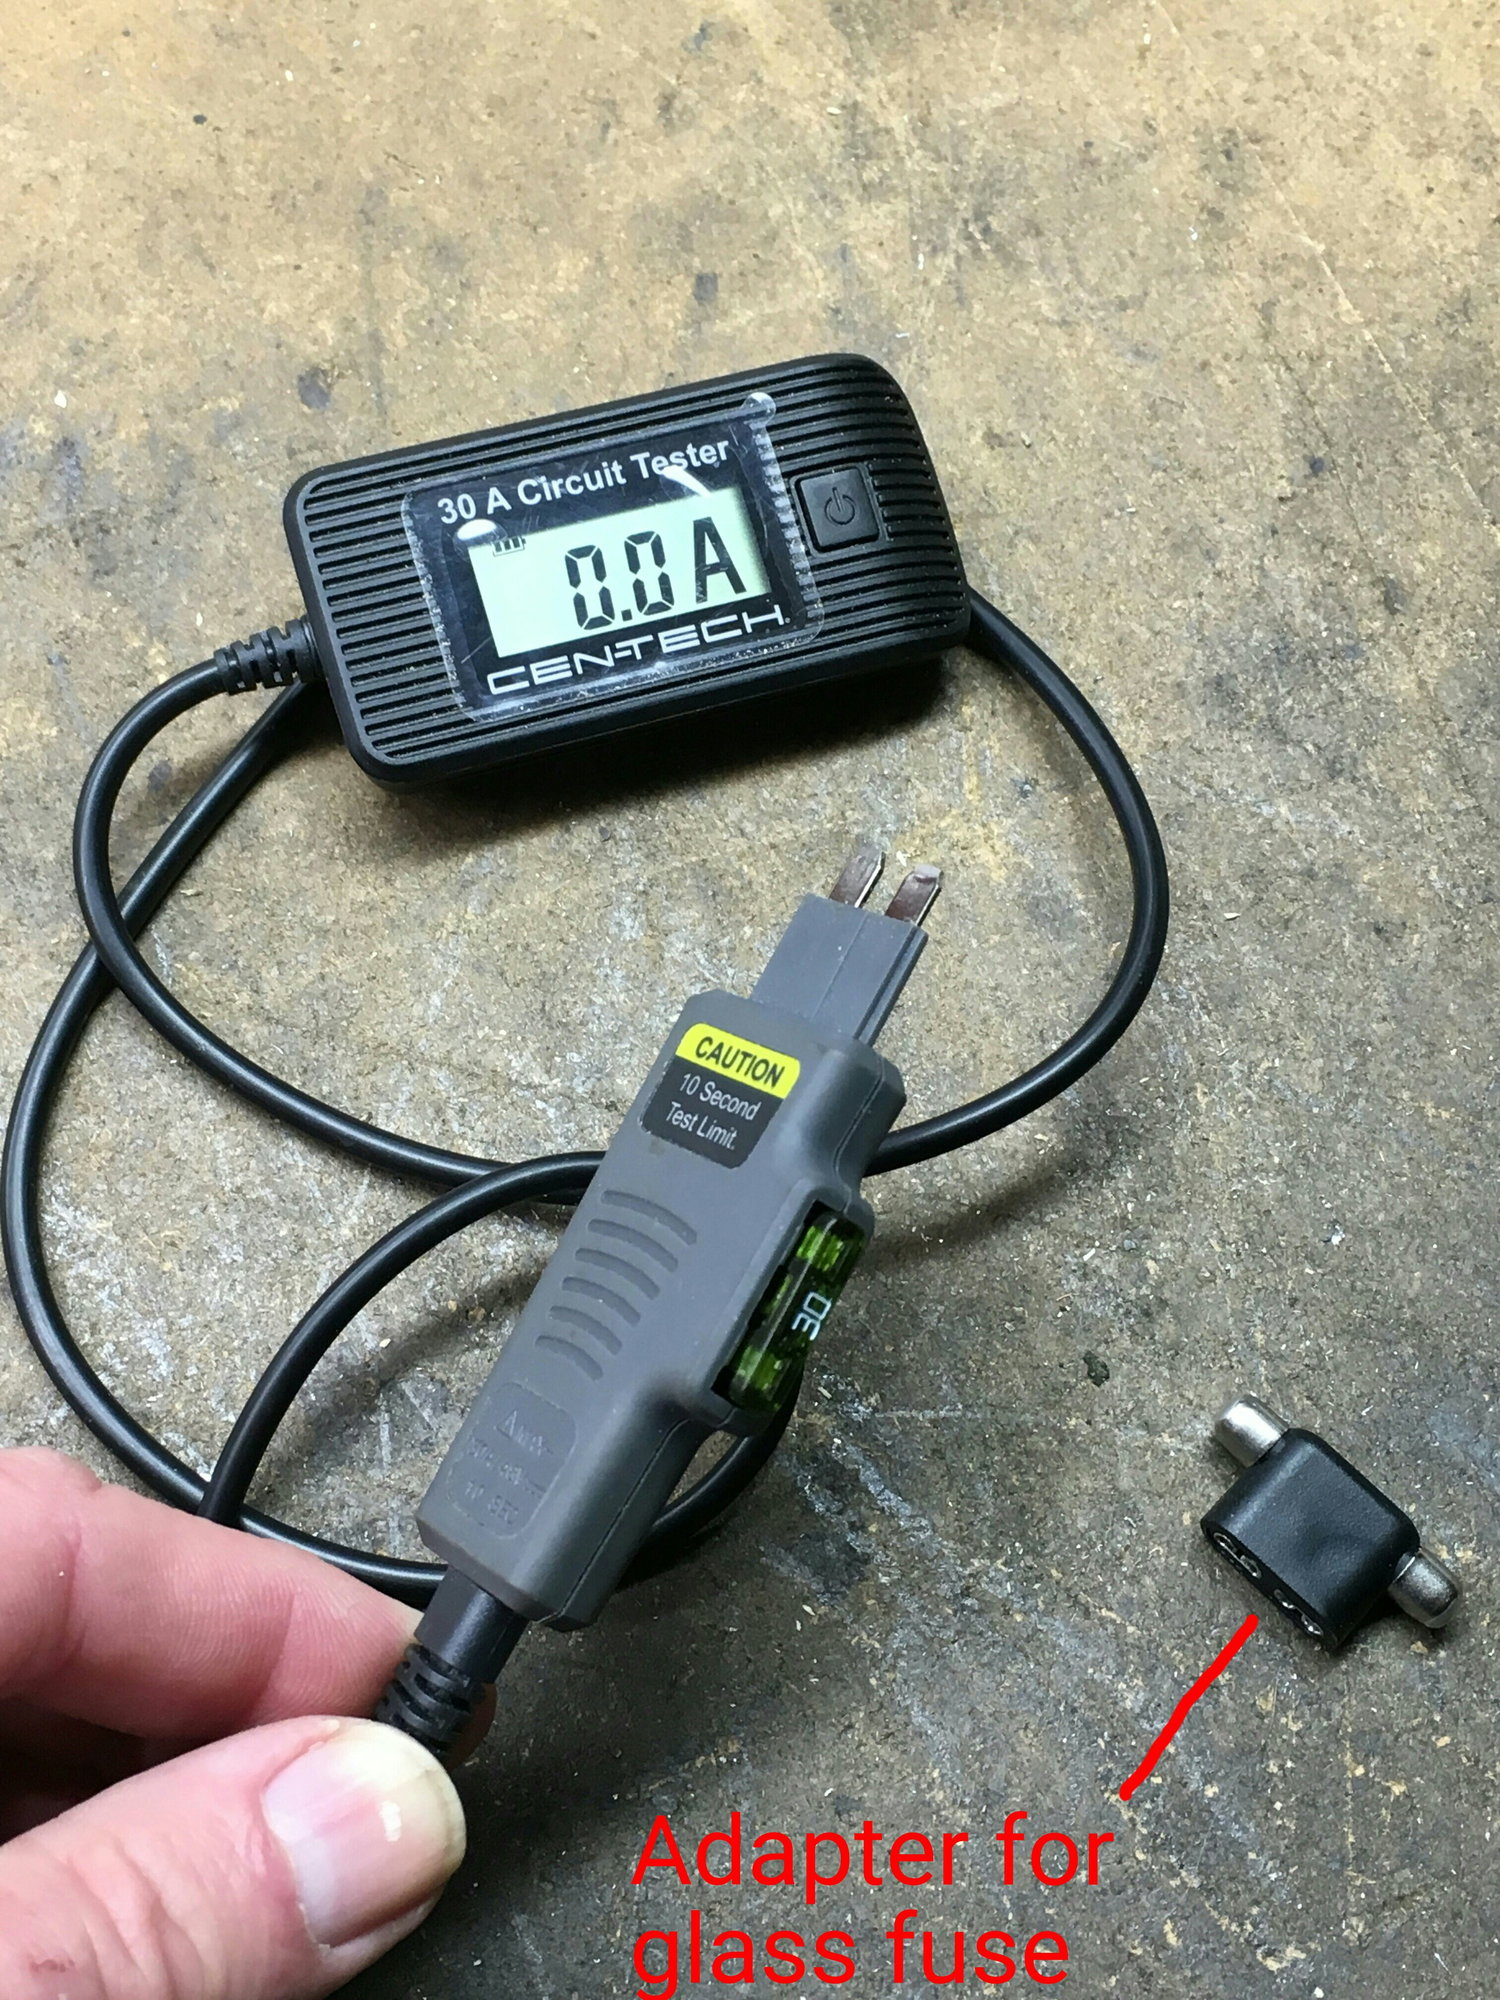 Output Fuse Blown Indicator Circuits Compilation Electrical